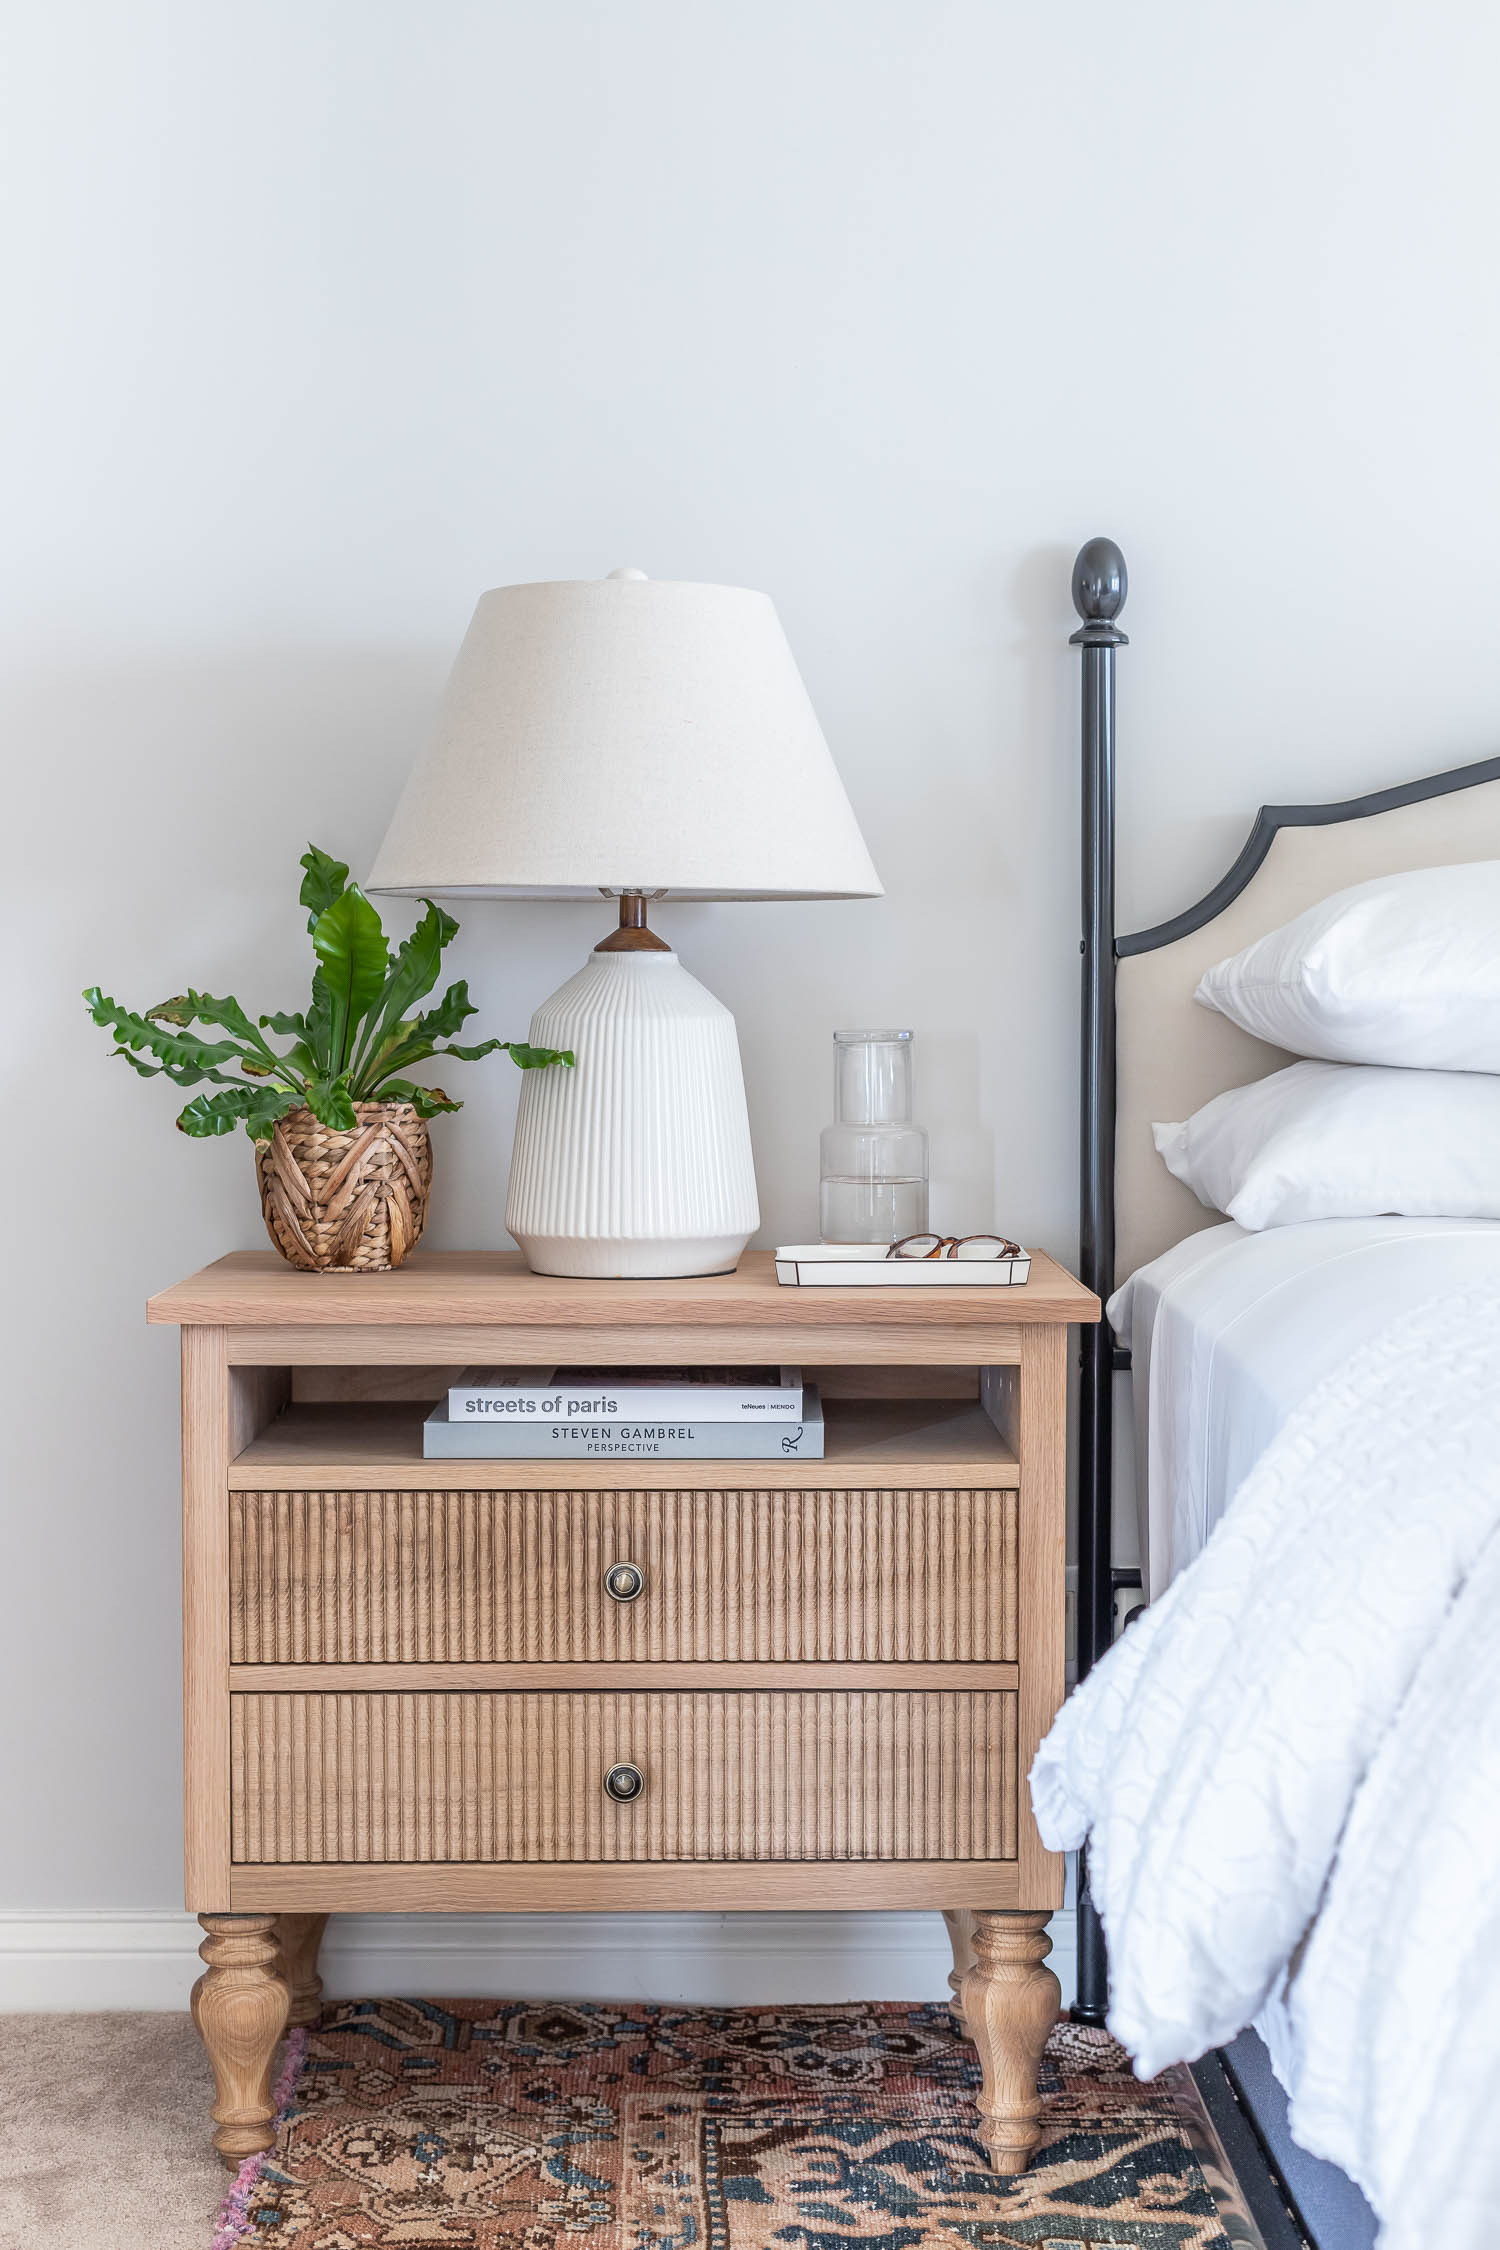 How to build a gorgeous DIY nightstand - Gustavian / French style